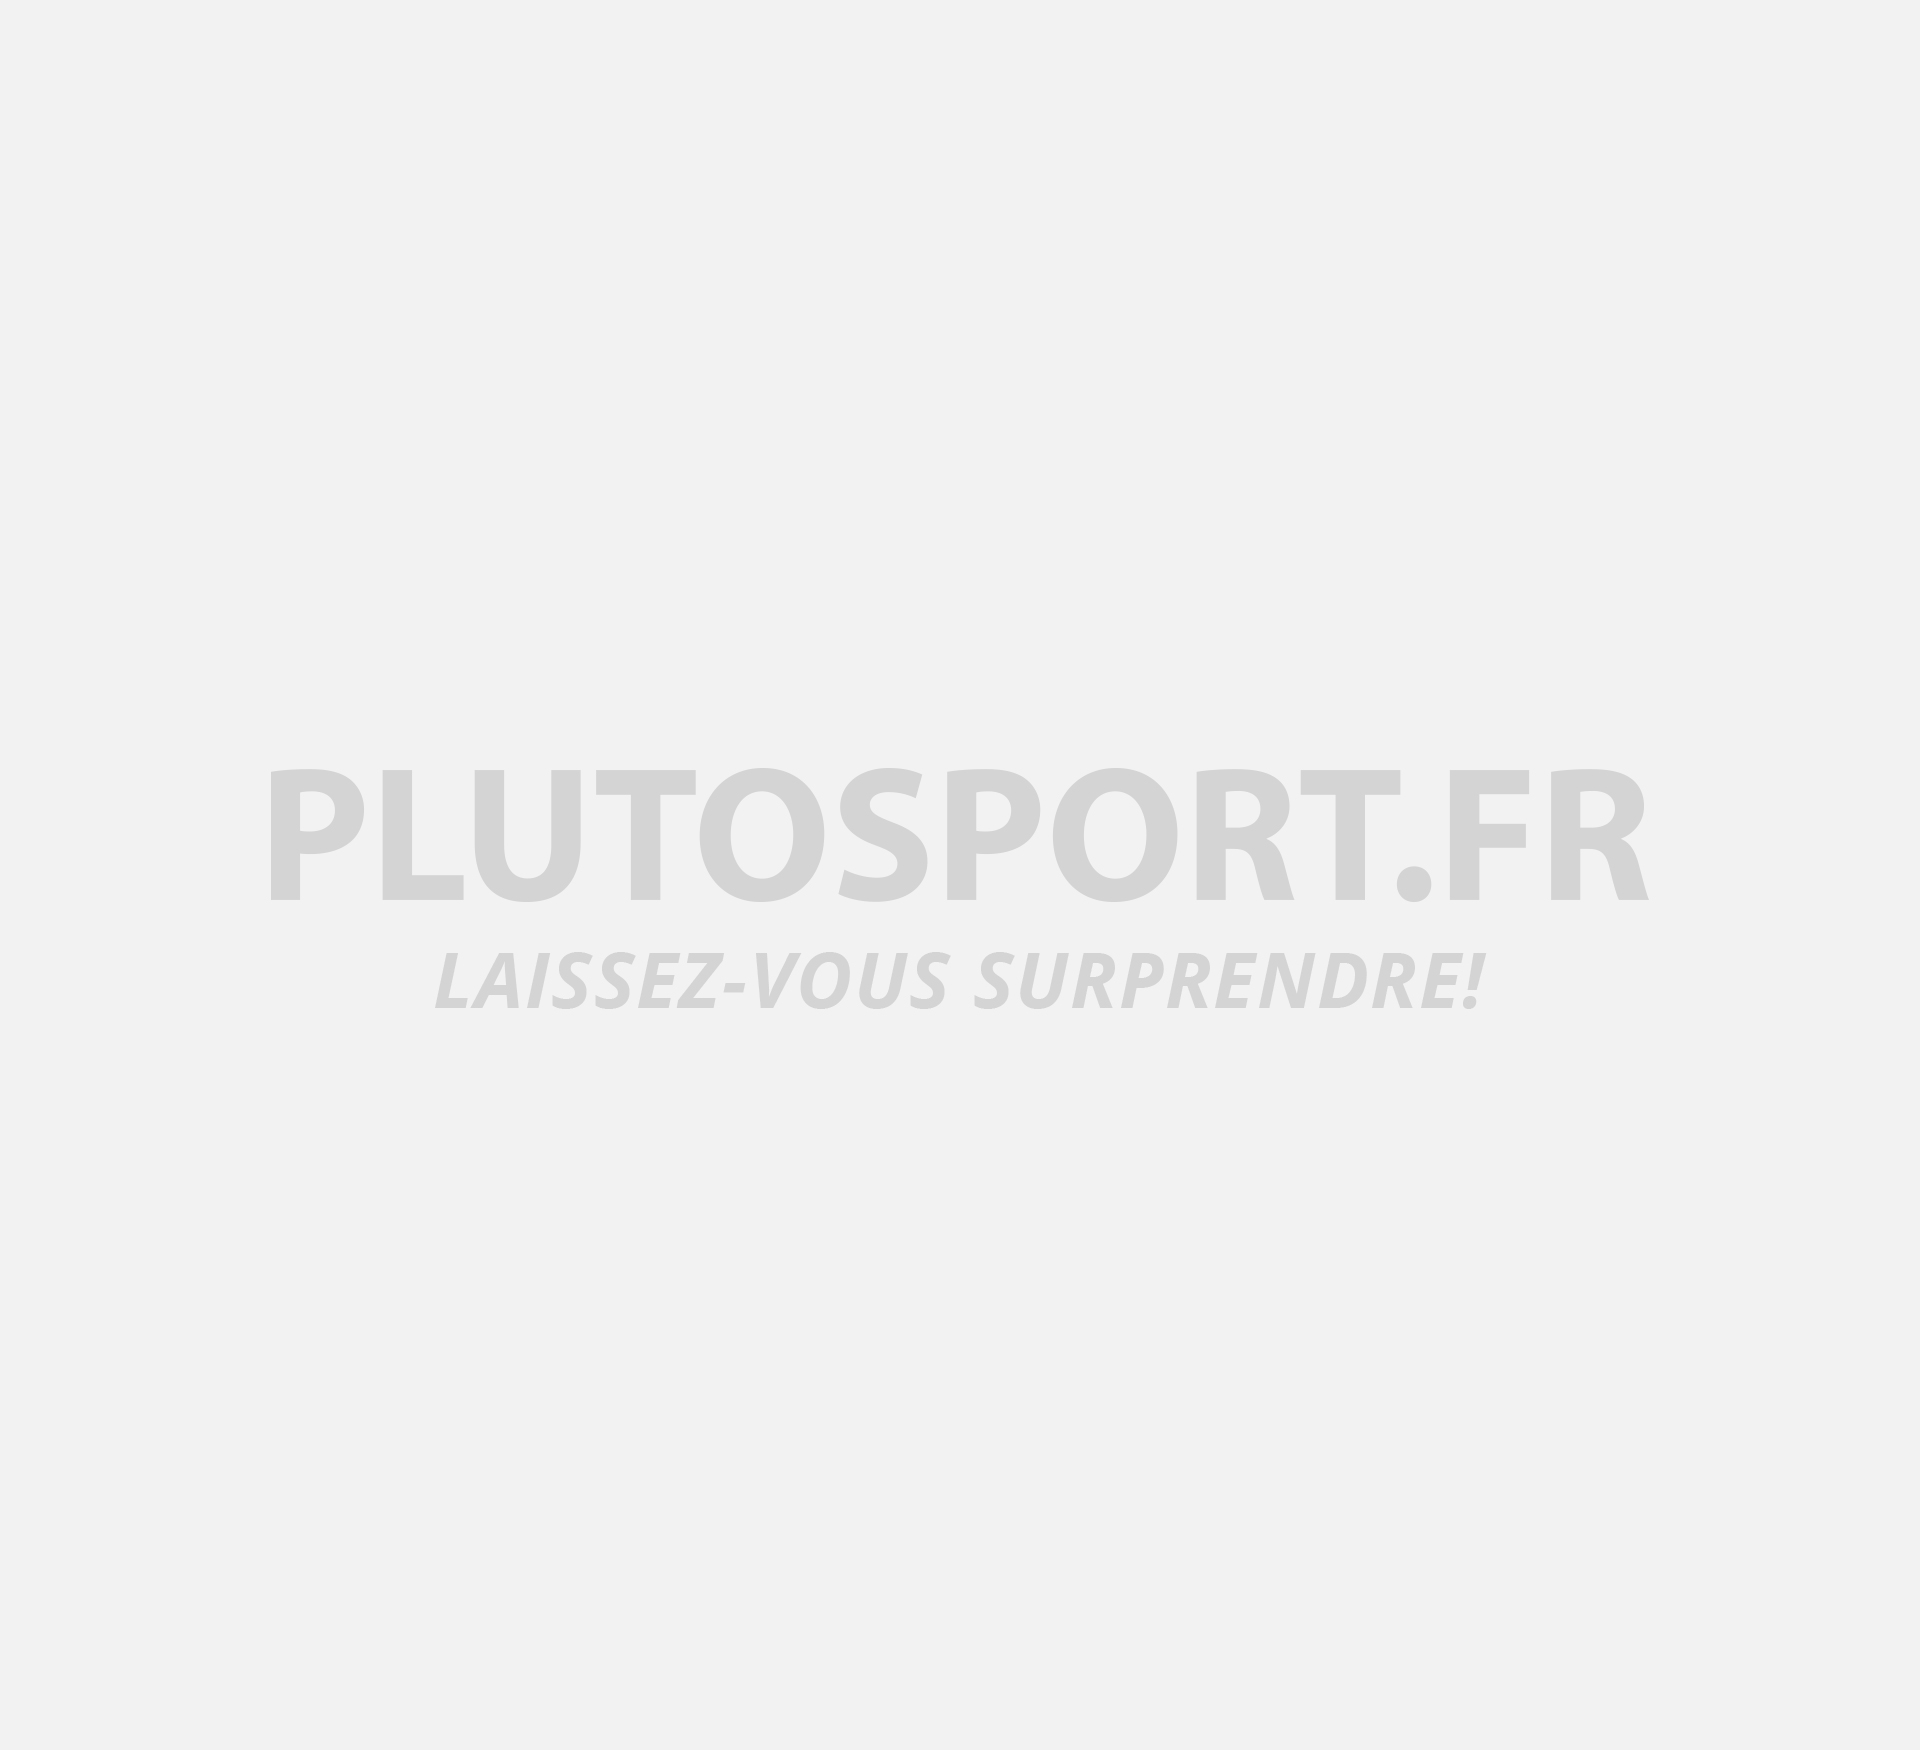 Reusch Prisma SG Finger Support LTD, Gants de gardien de but pour enfants